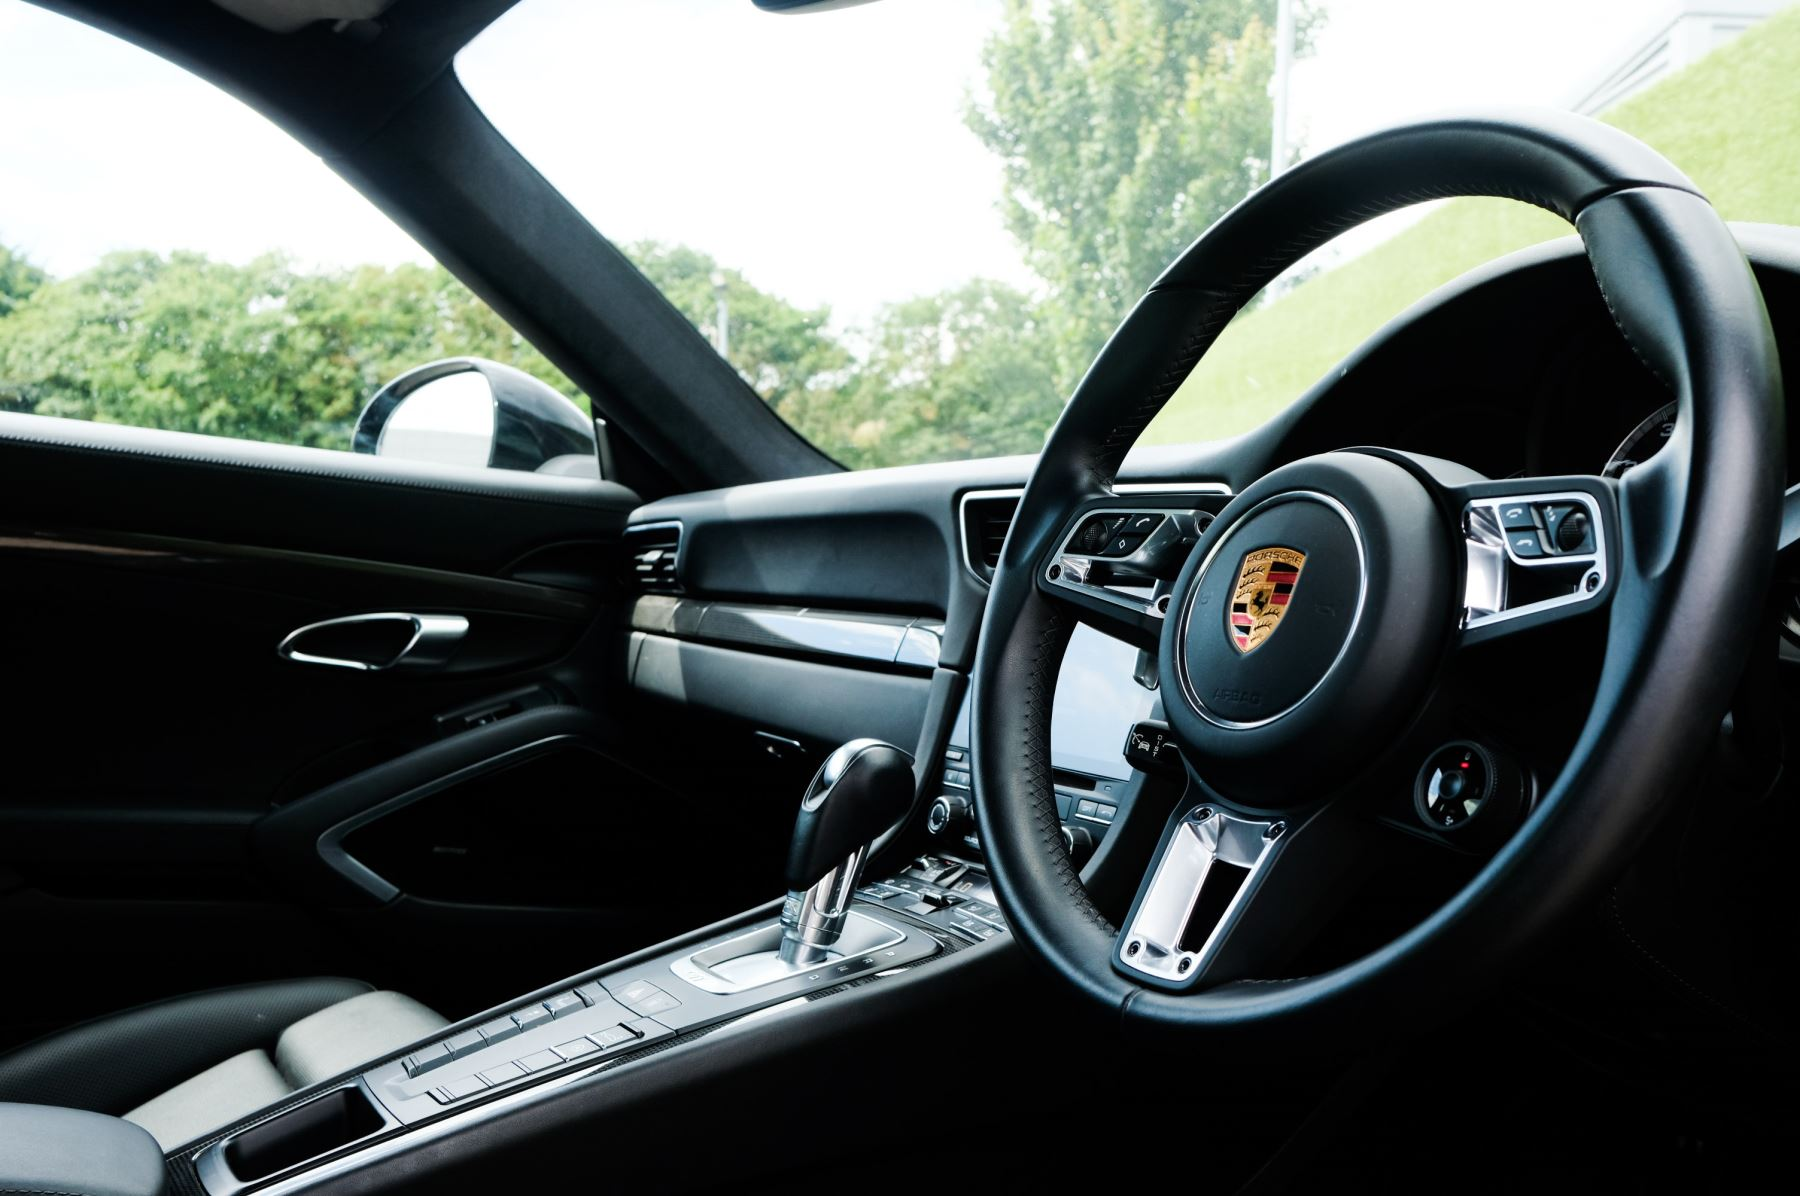 Porsche 911 PDK - Carbon interior package - Privacy Glass - 20 inch Sport Classic wheels image 29